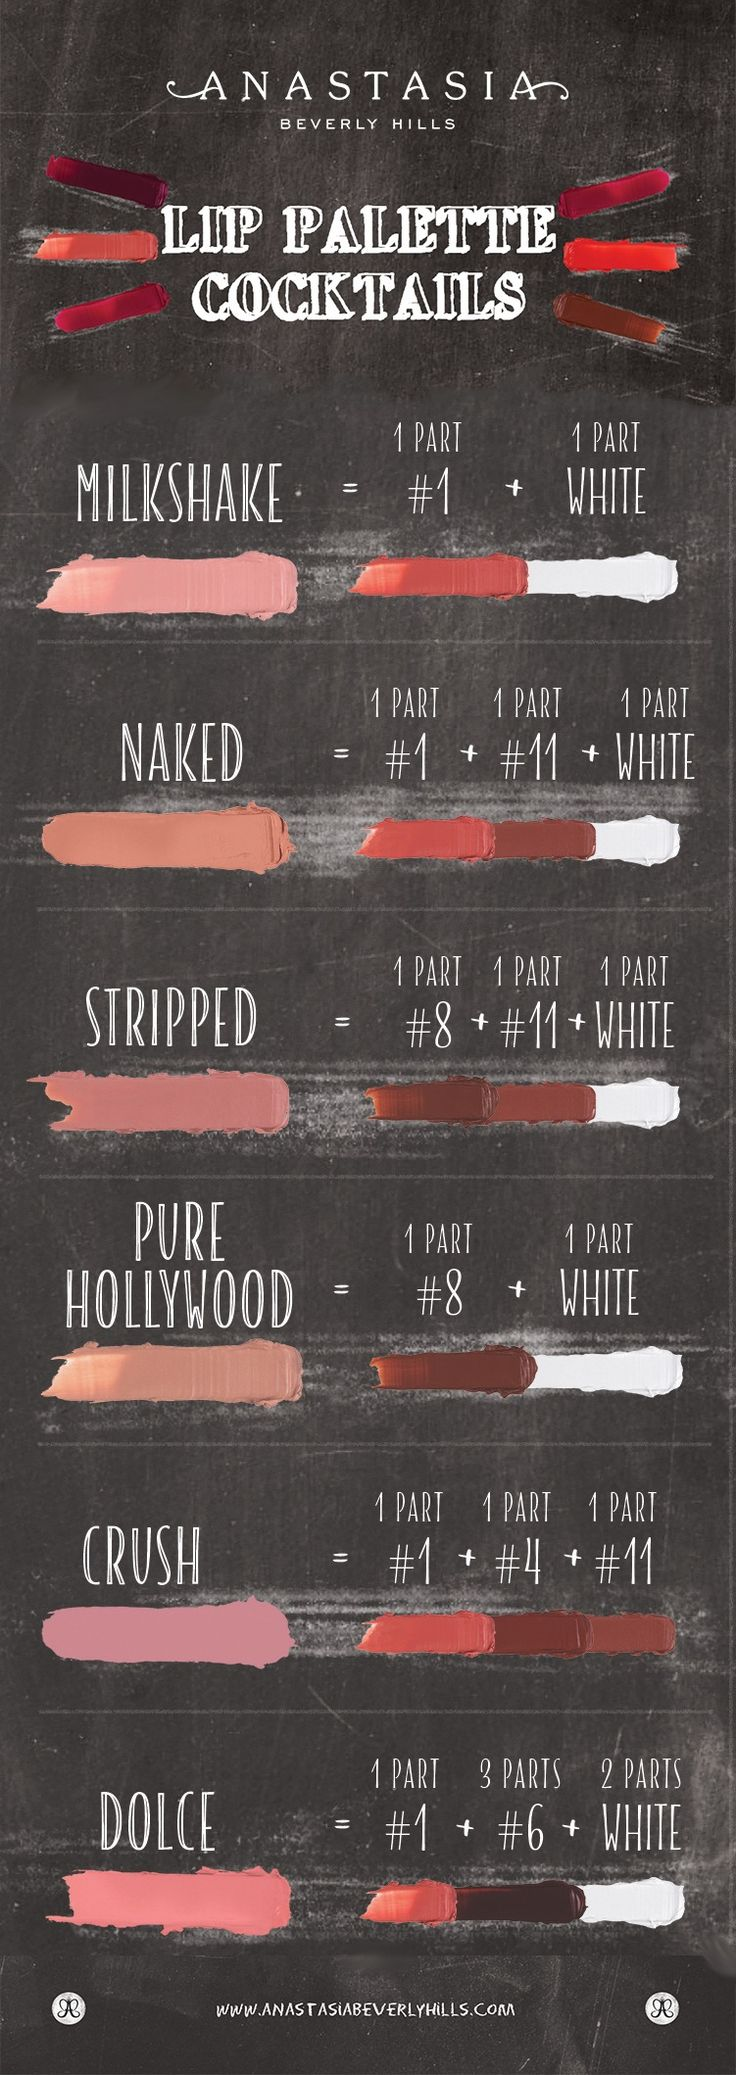 The Anastasia Beverly Hills Lip Palette gives you 18 different shades with endle...